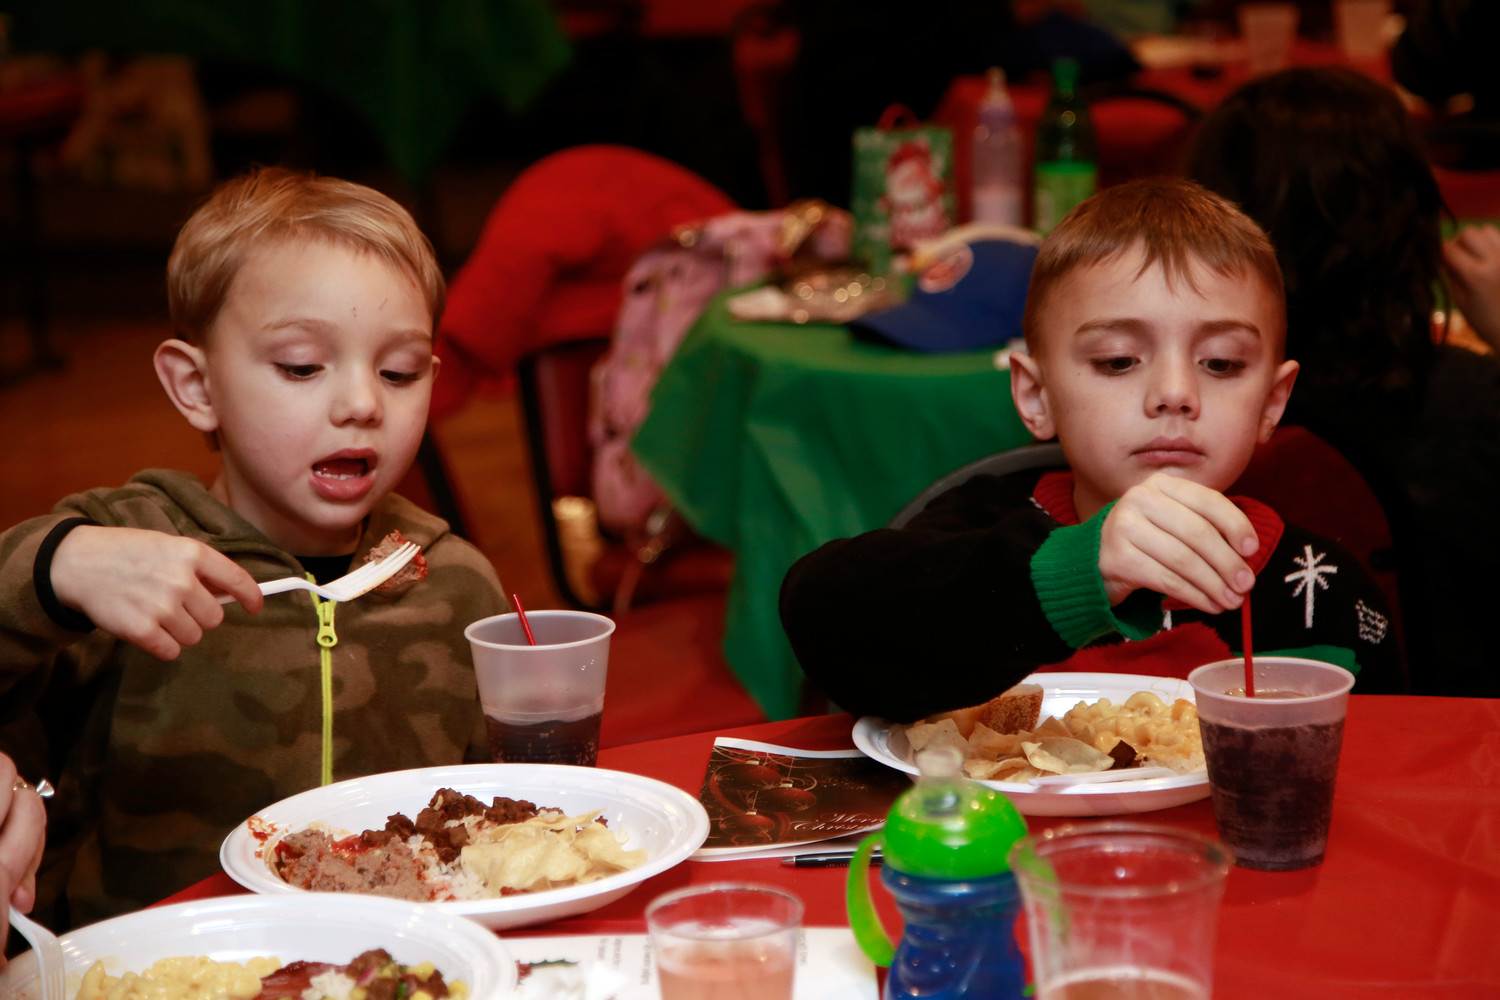 Wyatt Westby, 4, and his big brother Leyland, 7, enjoyed dinner before opening toys.